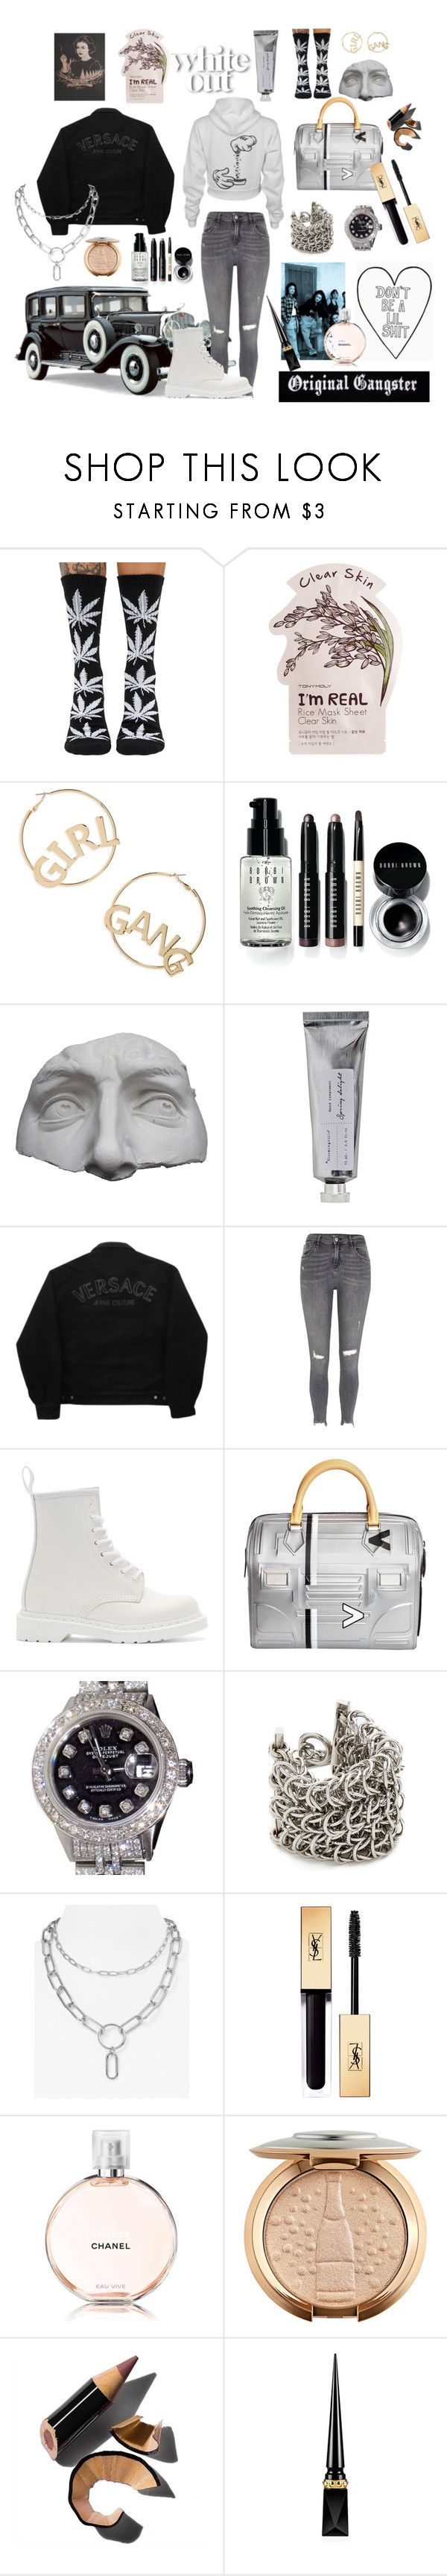 """""""b i jus' might. come for me i dare u."""" by hawarauf ❤ liked on Polyvore featuring HUF, TONYMOLY, BP., Bobbi Brown Cosmetics, Romanelli, Bloomingville, Versace Jeans Couture, River Island, Dr. Martens and Louis Vuitton"""